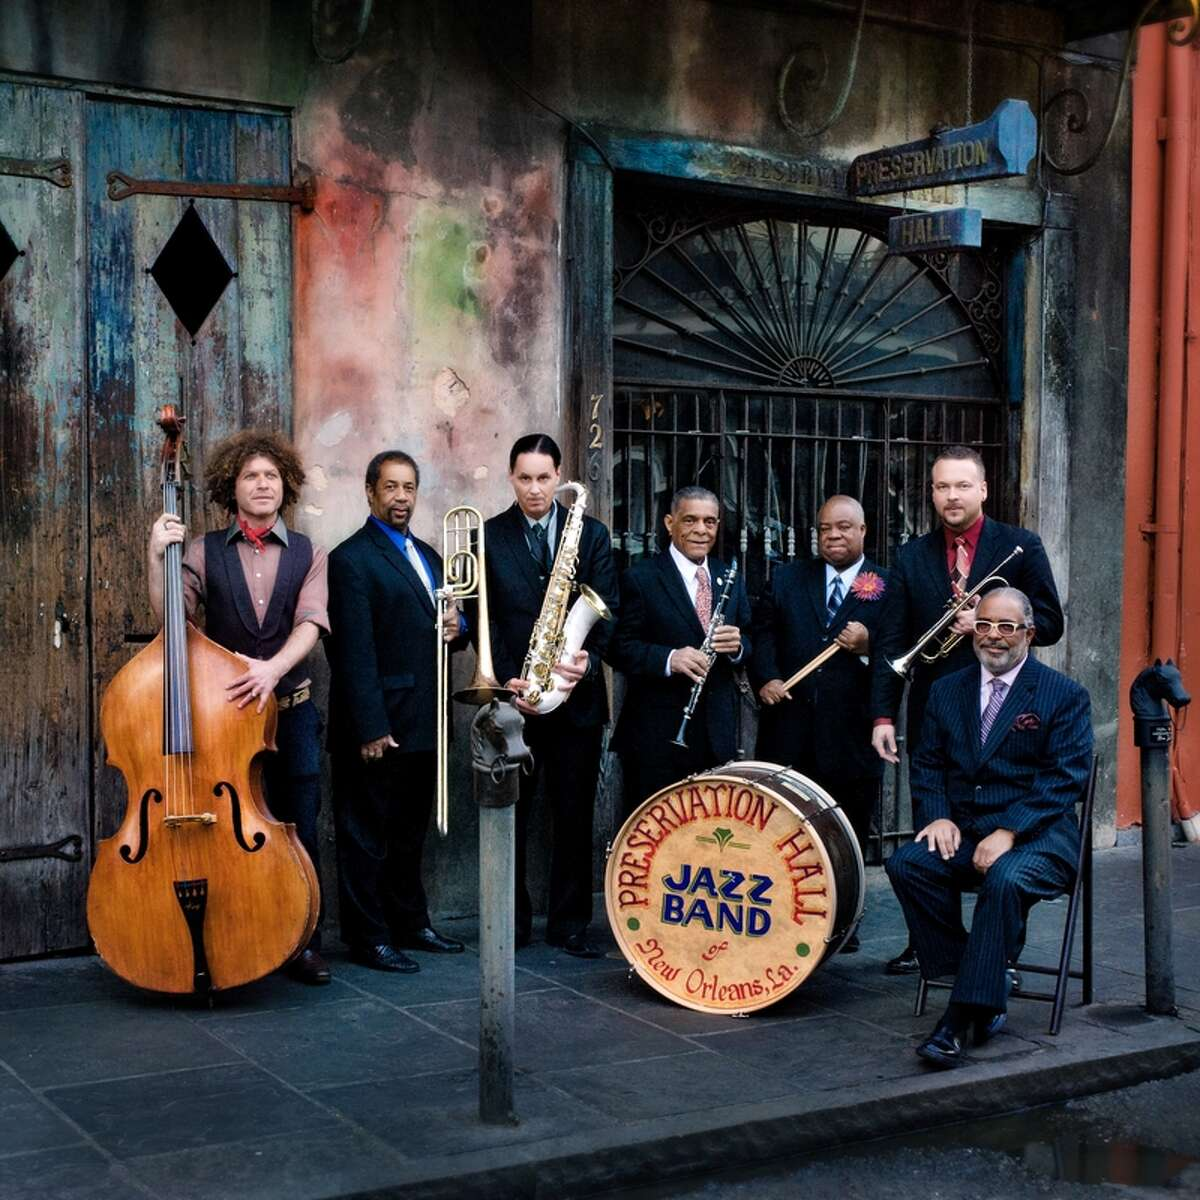 French Quarter institution Preservation Hall exists to preserve New Orleans jazz tradition. Under the direction of bass player Ben Jaffe, son of founder Allan Jaffe, the hall's touring band proves tradition doesn't stand still, whether it's showcasing its music on rock festival stages or creating original songs that blend the band's sound with varied styles, such as the Afro-Cuban rhythms on this year's